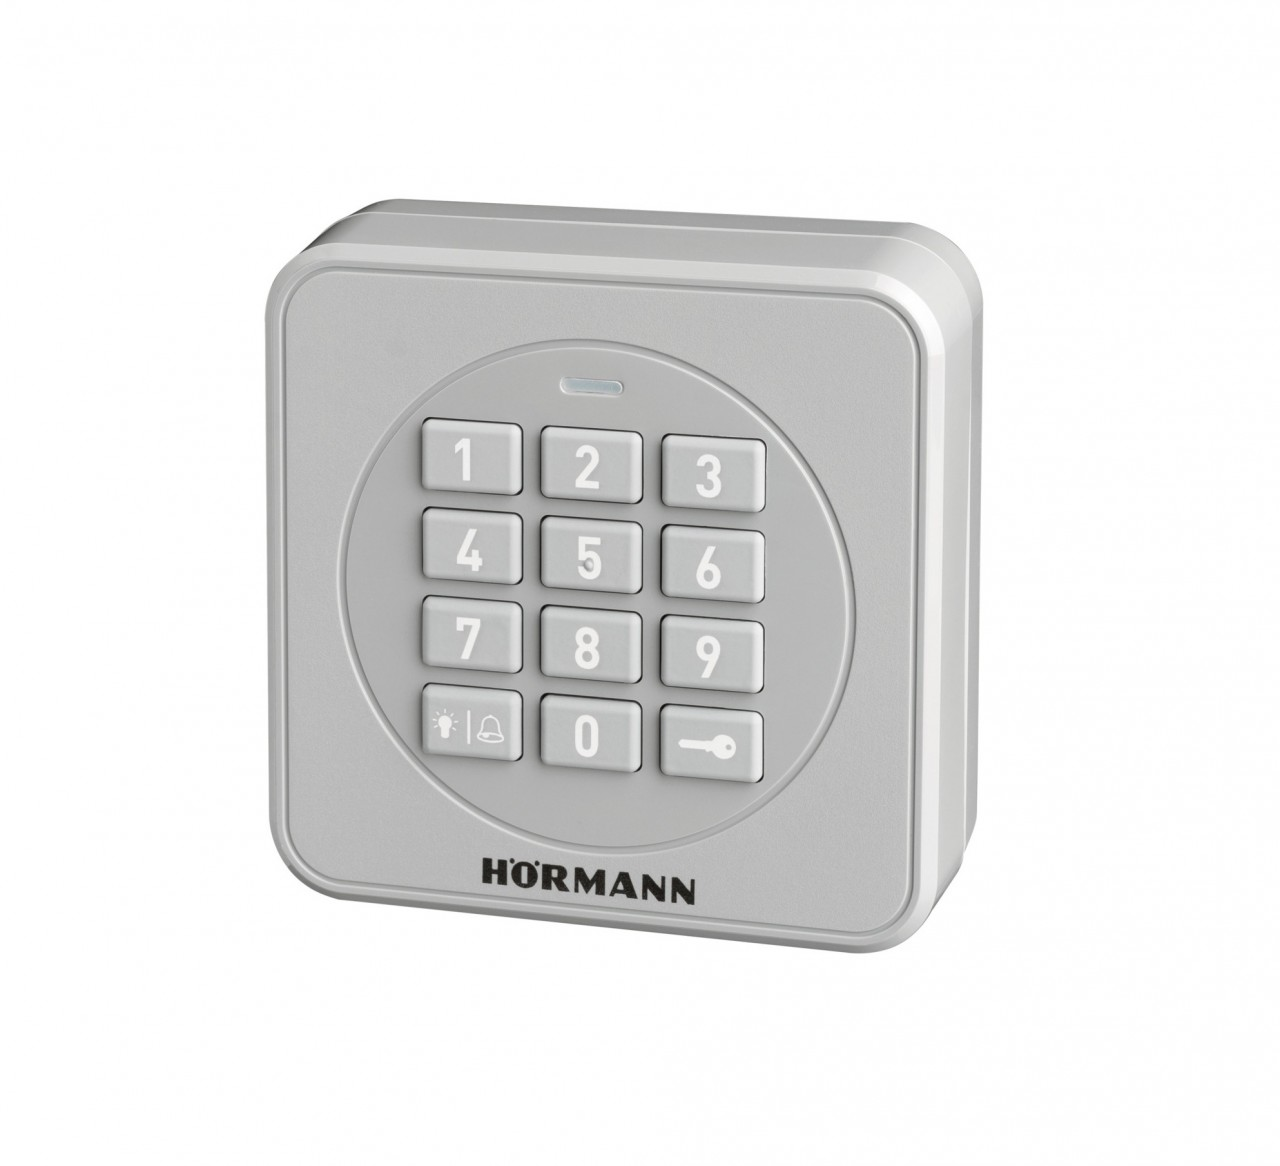 Hormann Wireless Code Keypad FCT 3-1 BS